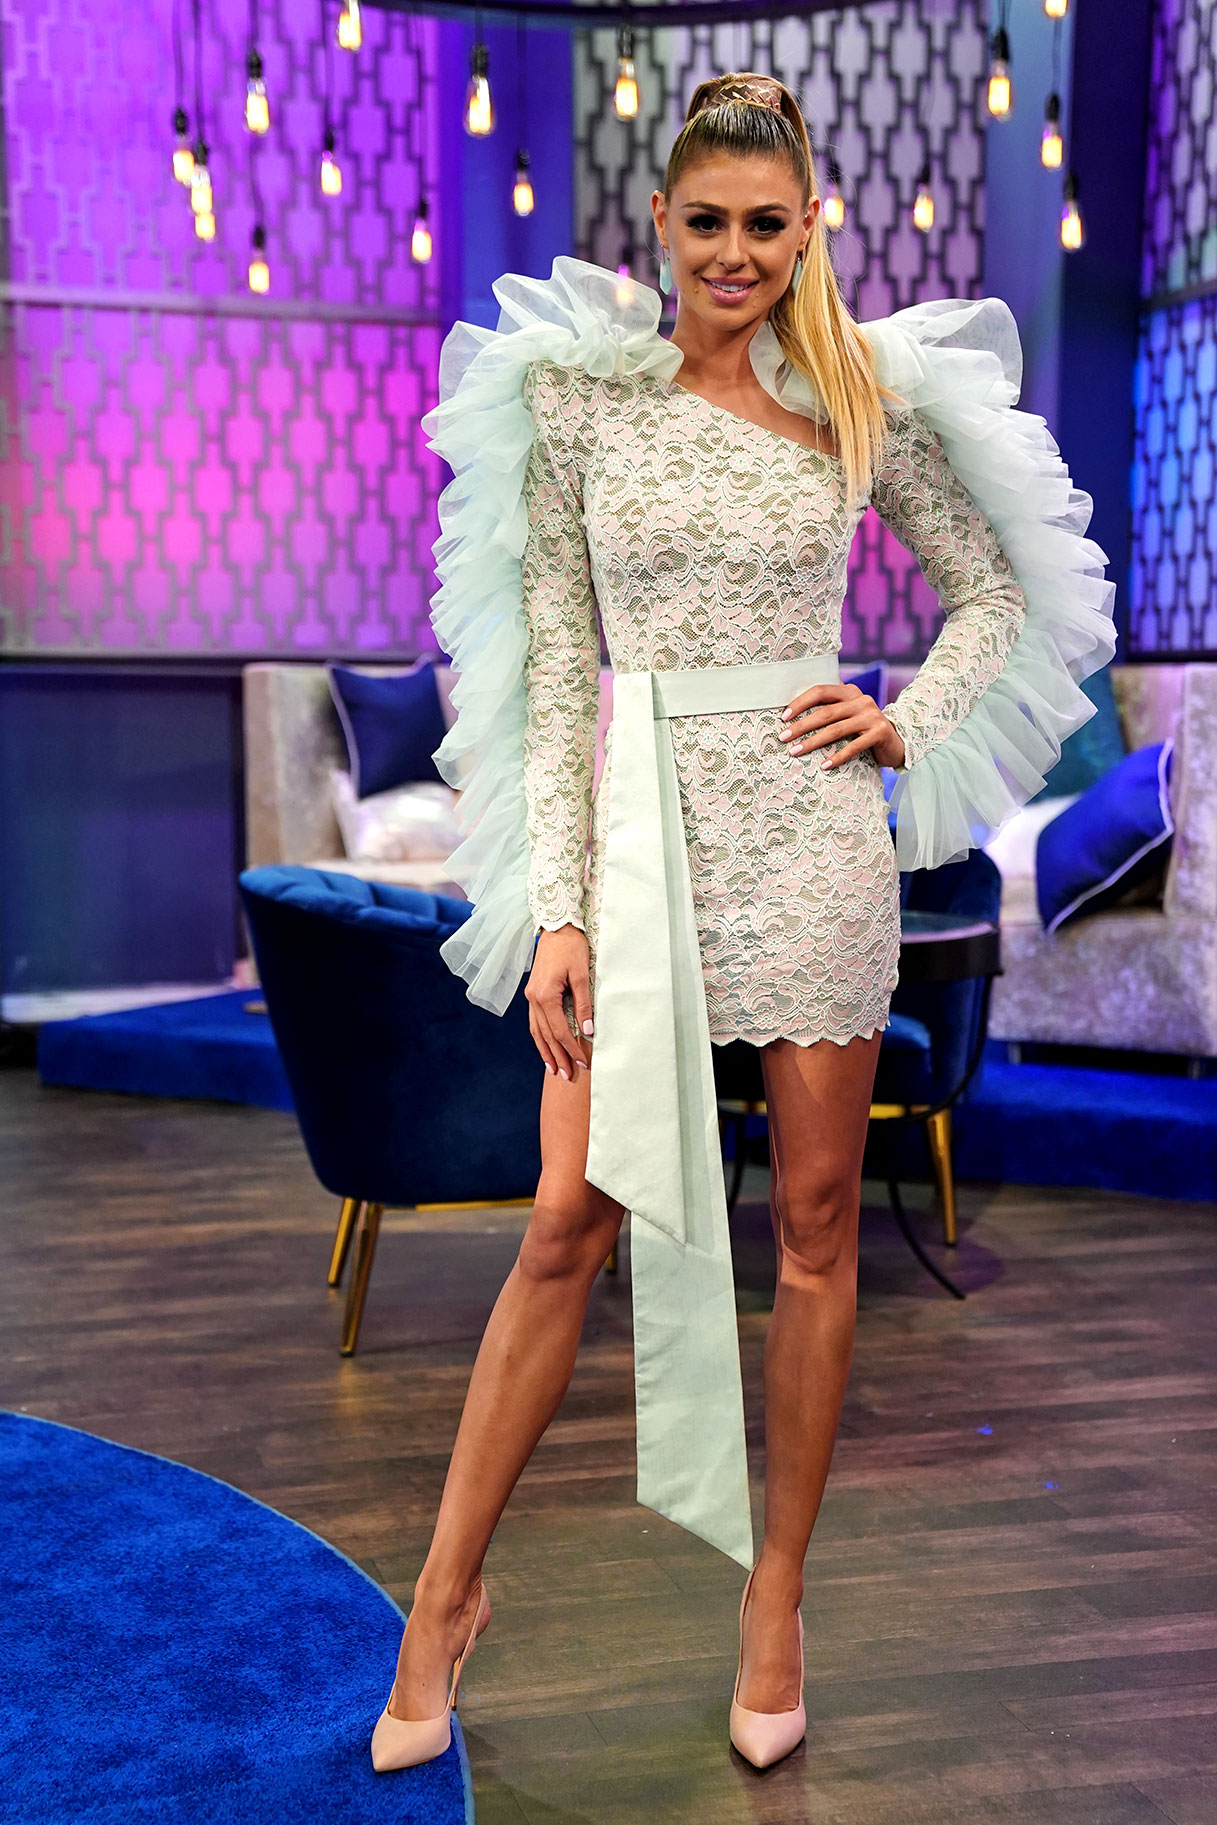 Vanderpump Rules Season 7 Reunion Fashion